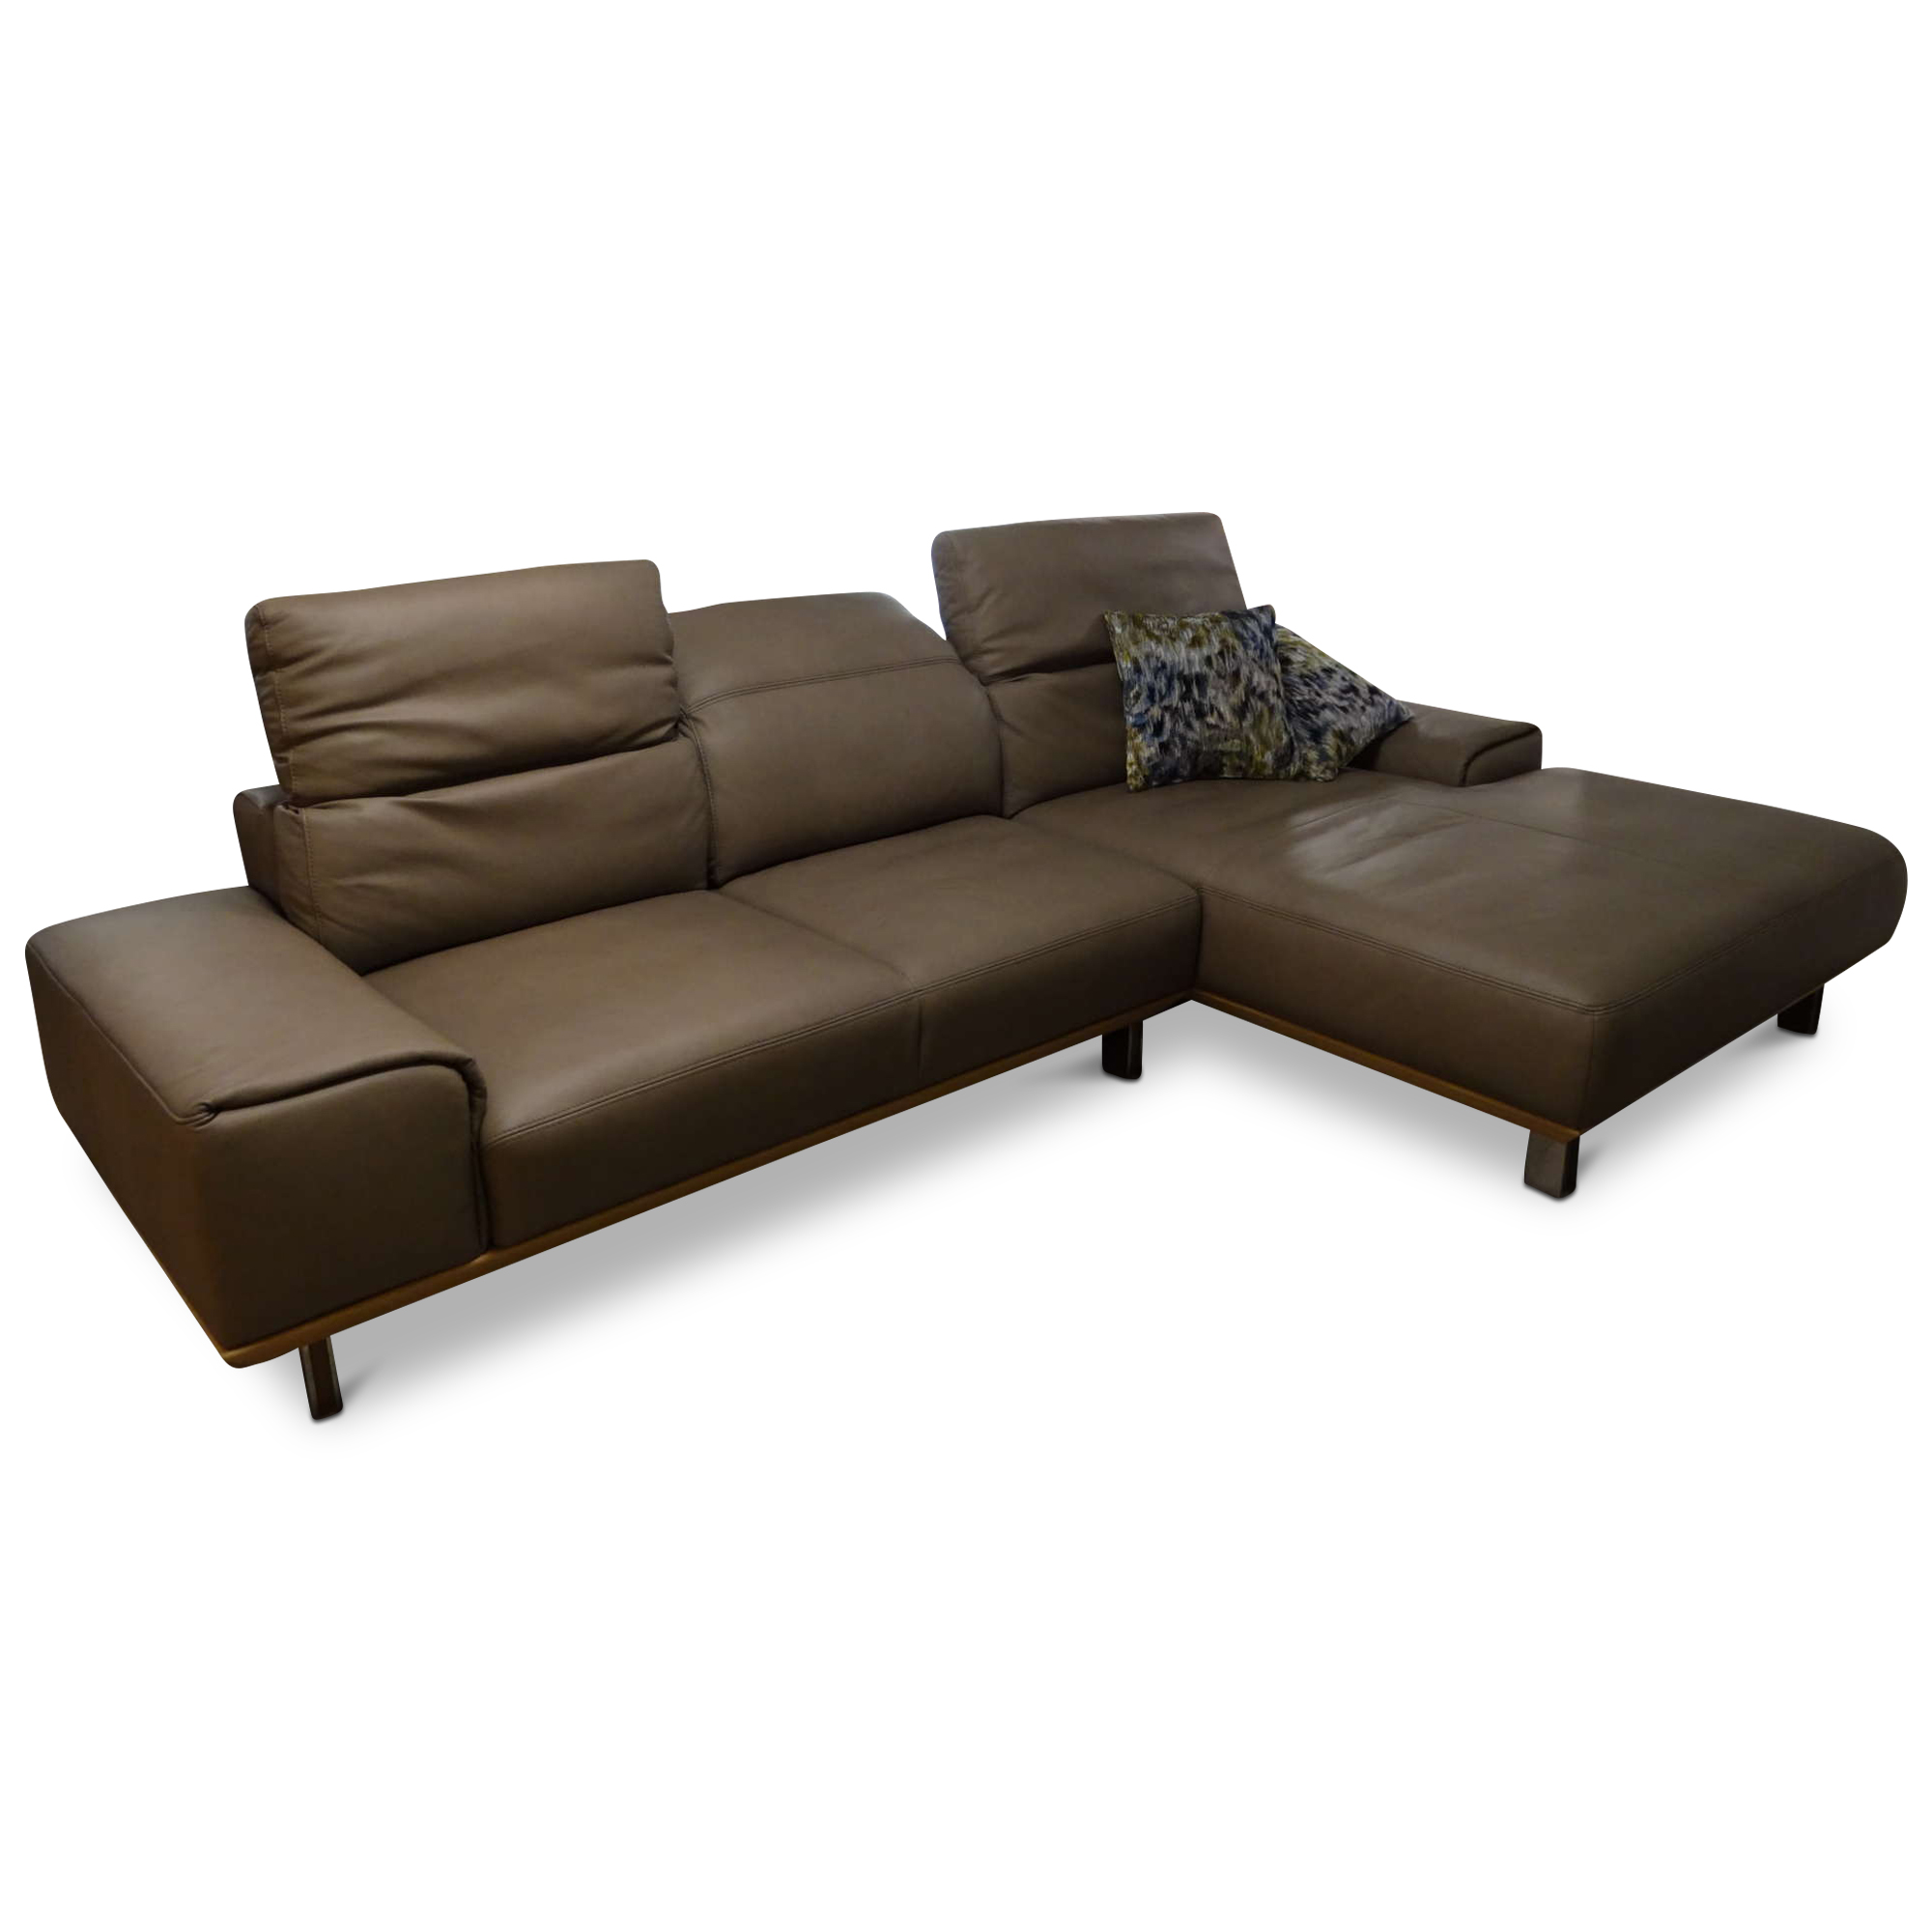 musterring designer ecksofa mr 2490 mit hocker leder holz metall beige braun ebay. Black Bedroom Furniture Sets. Home Design Ideas